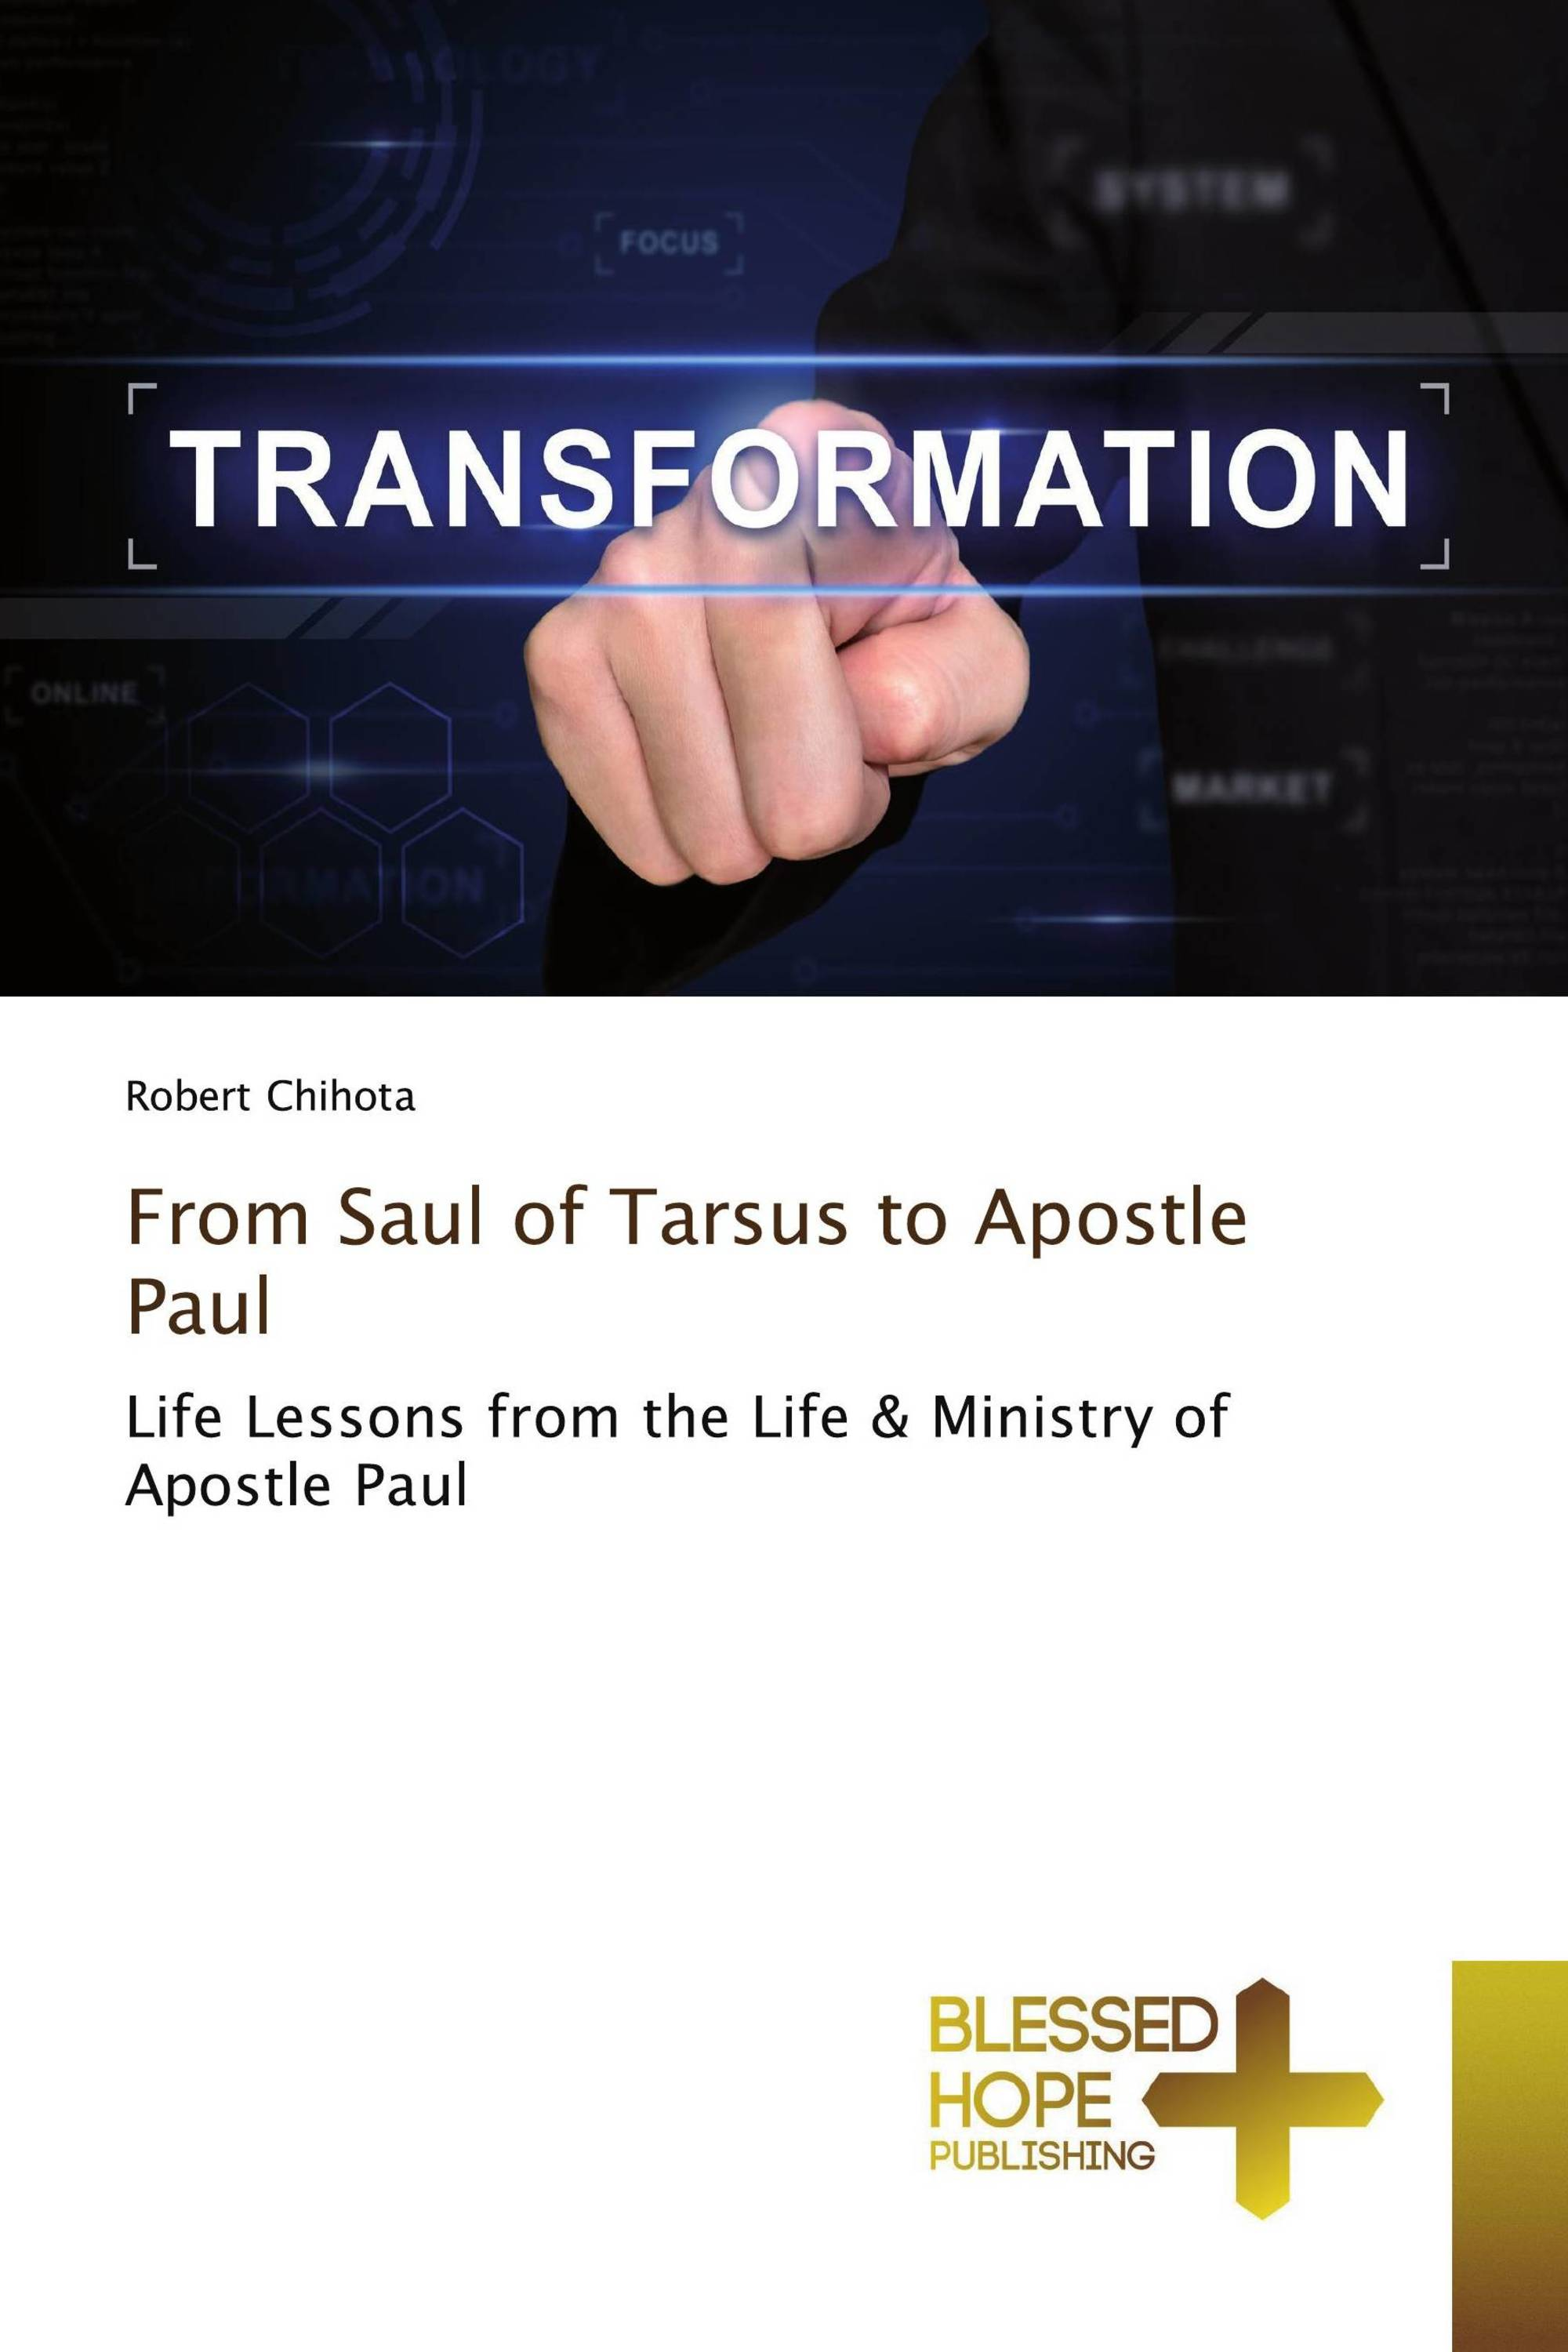 From Saul of Tarsus to Apostle Paul